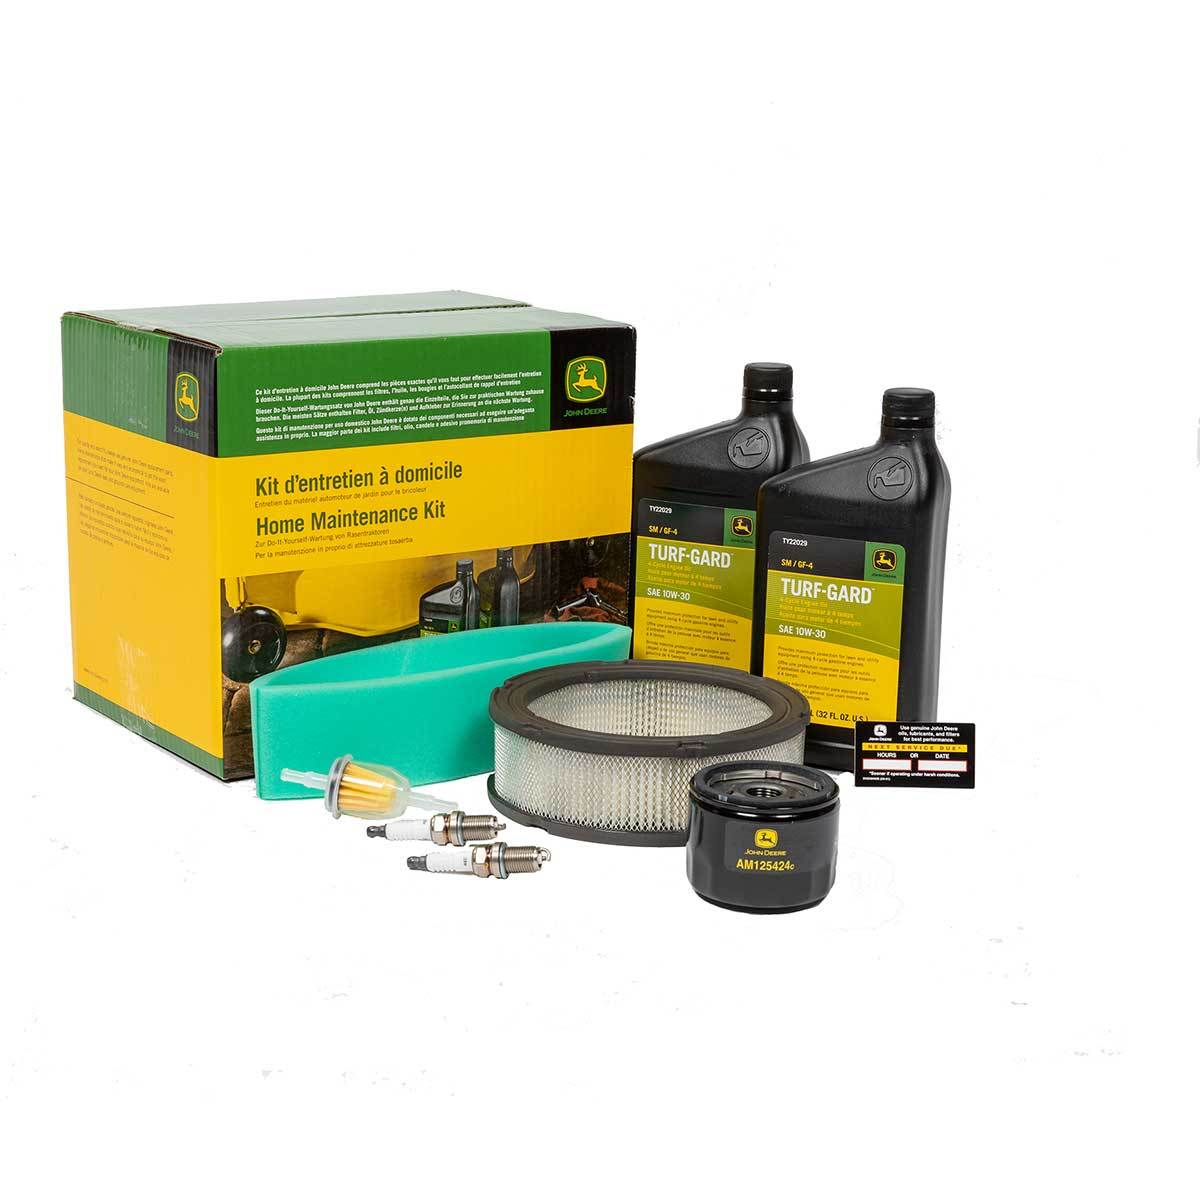 Air Compressors Home Workshop Products John Deere Us >> Home Maintenance Kit For Gt Lt Lx And Sst Series